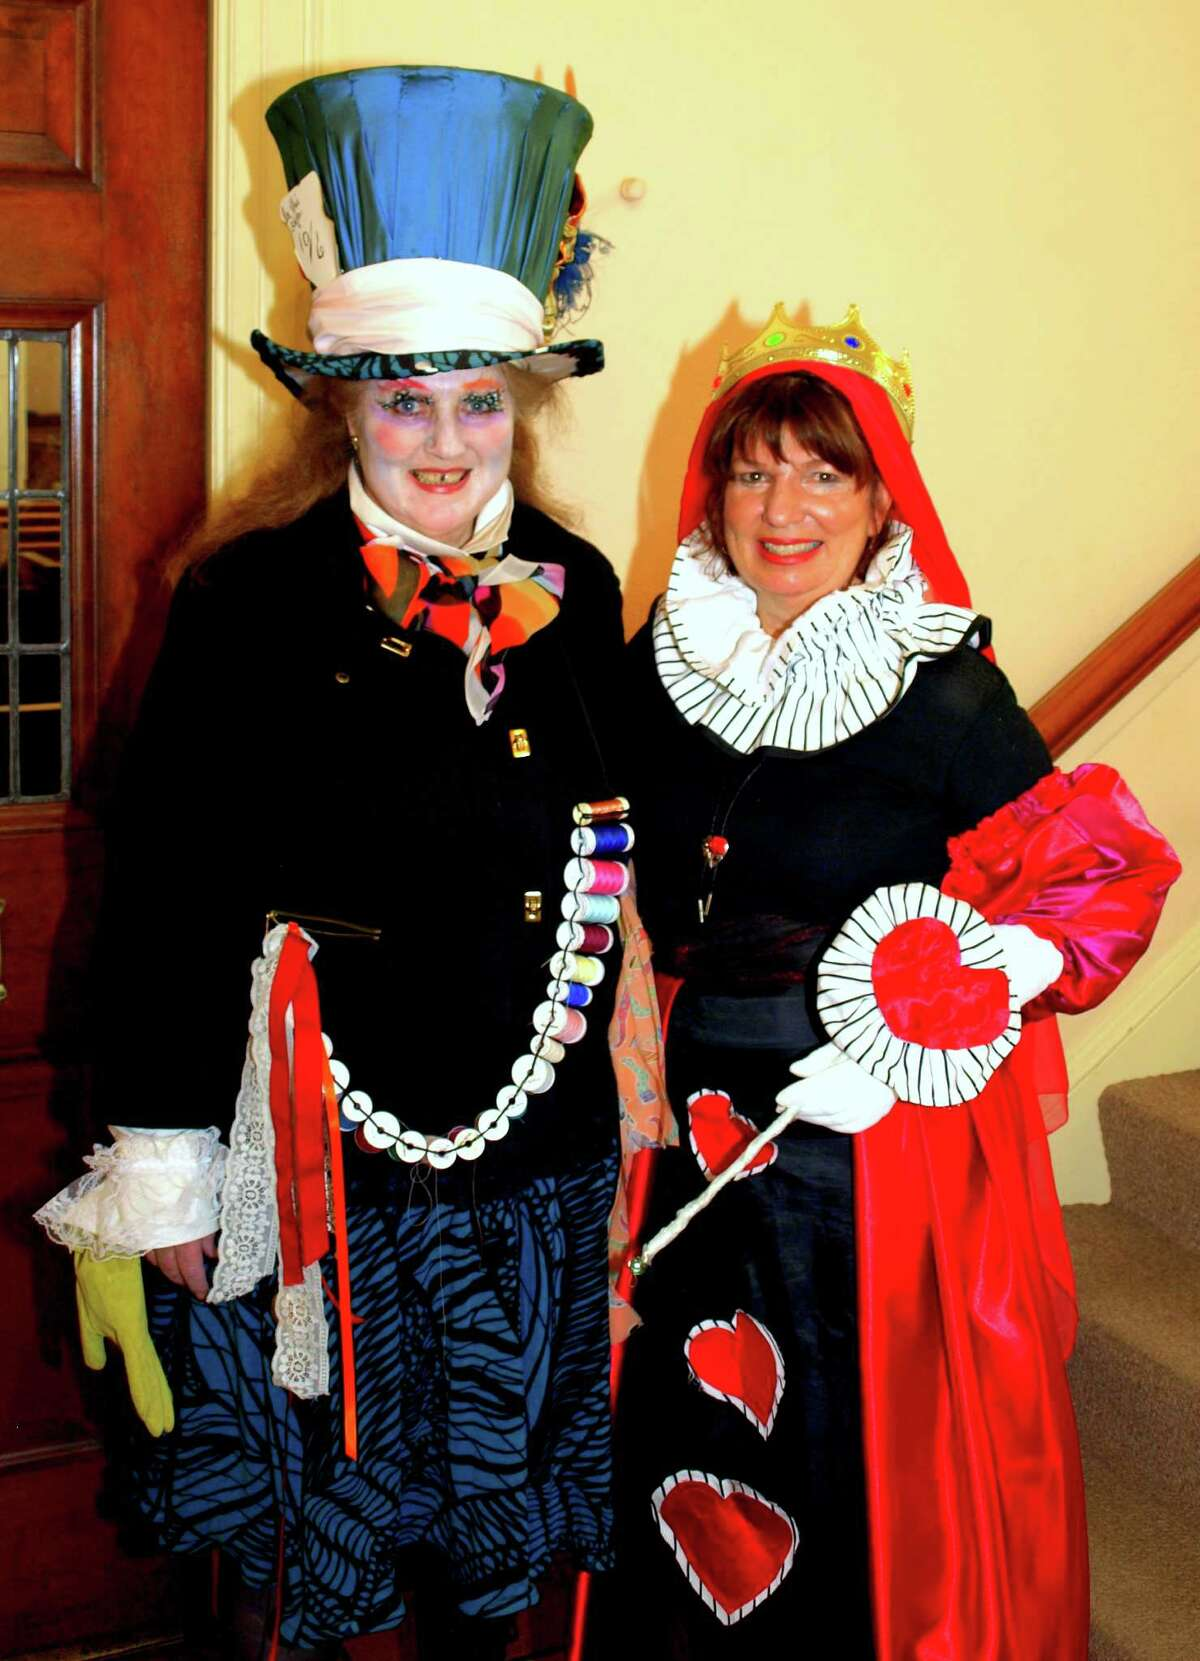 """Elaborate costumes will be a feature of the 11th annual """"Pipescreams"""" Halloween Musical Extravaganza Concert Sunday, Oct. 21, in Bridgeport. Shown at last year's event are, from left, Mimi Eppig and Cathy Tuttle, both of Trumbull."""